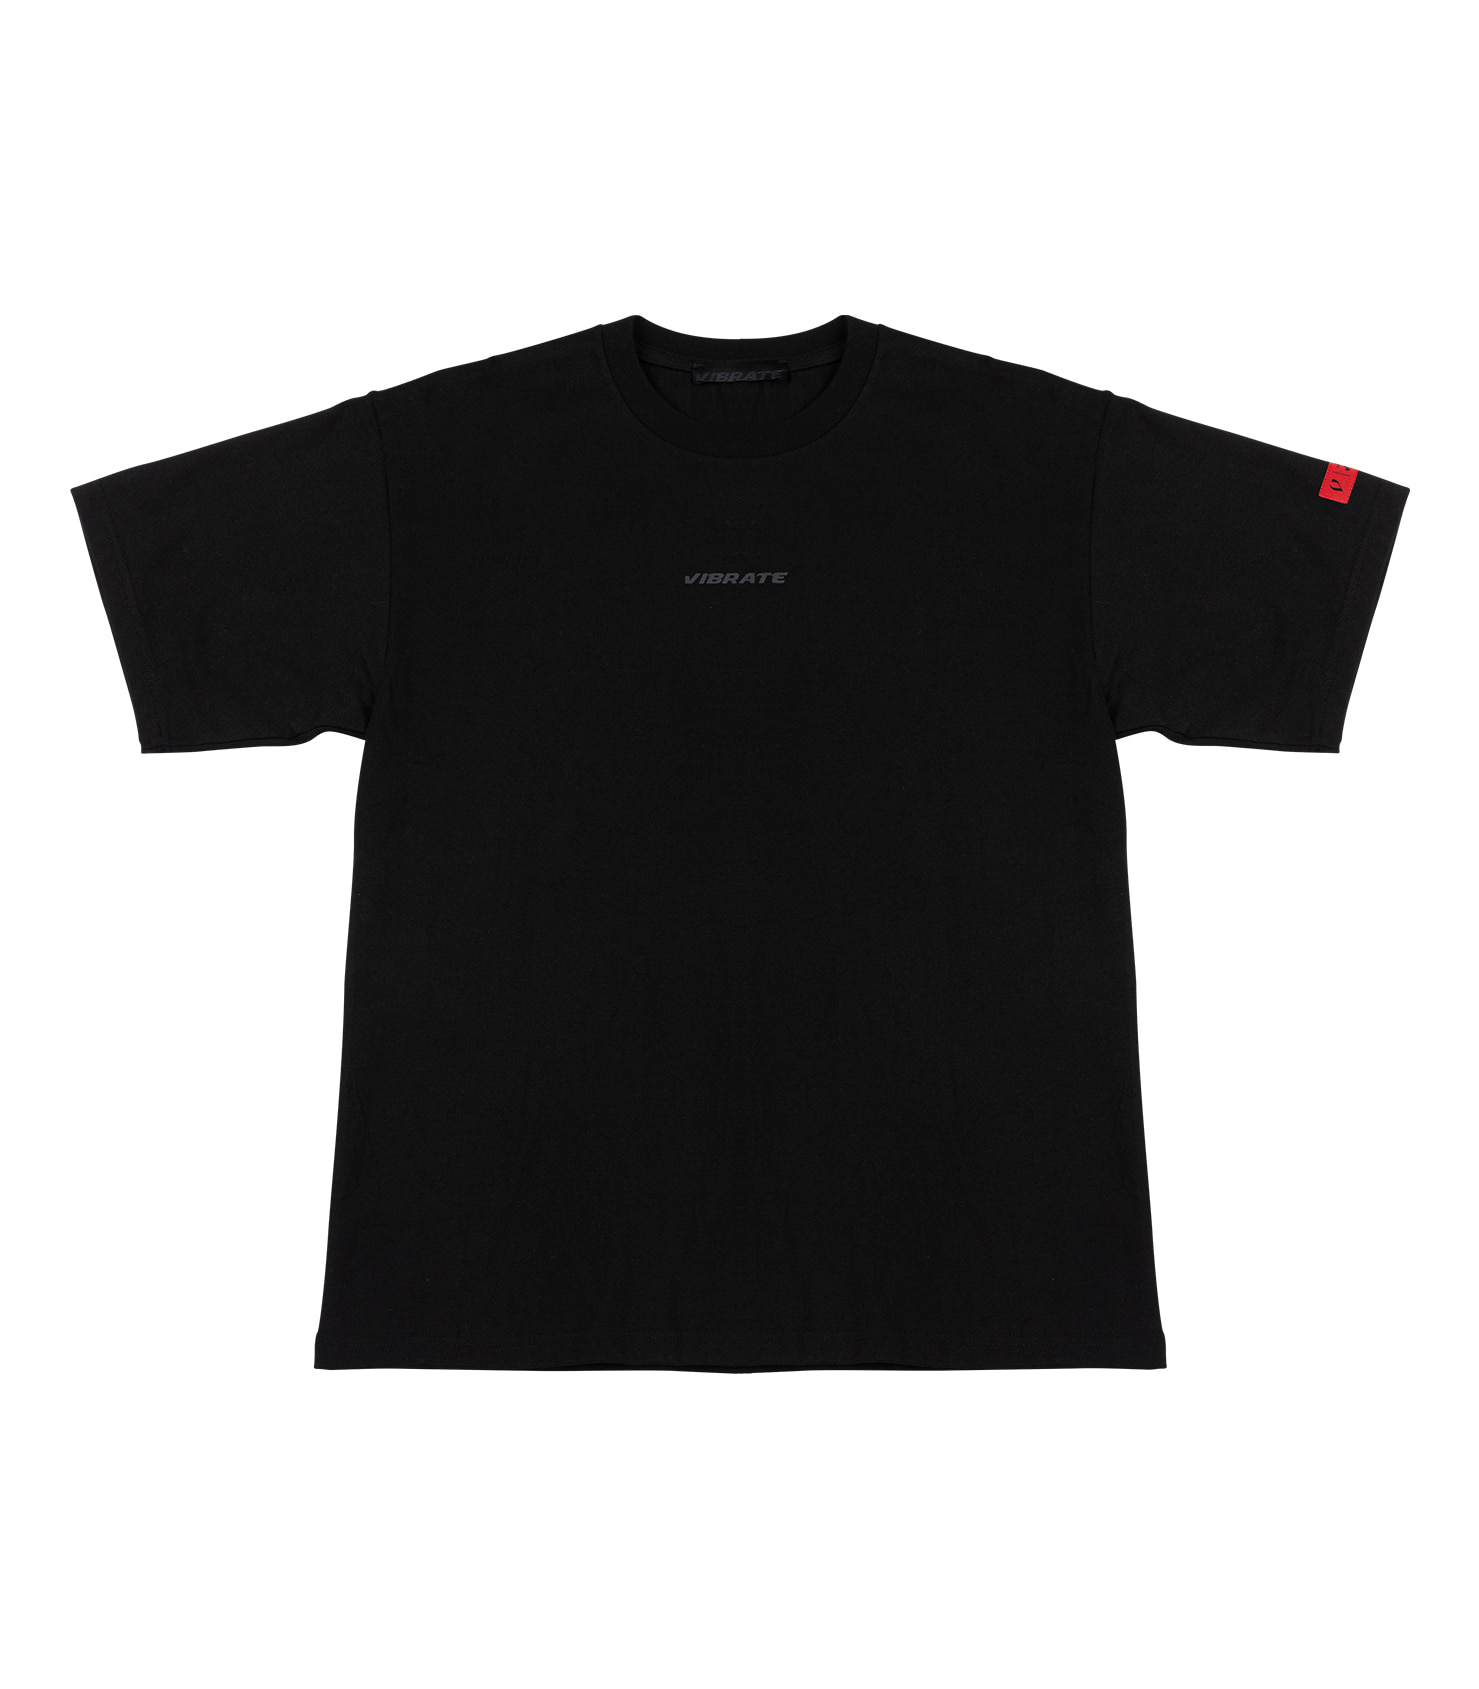 V FLASH M002 T-SHIRT (BLACK)